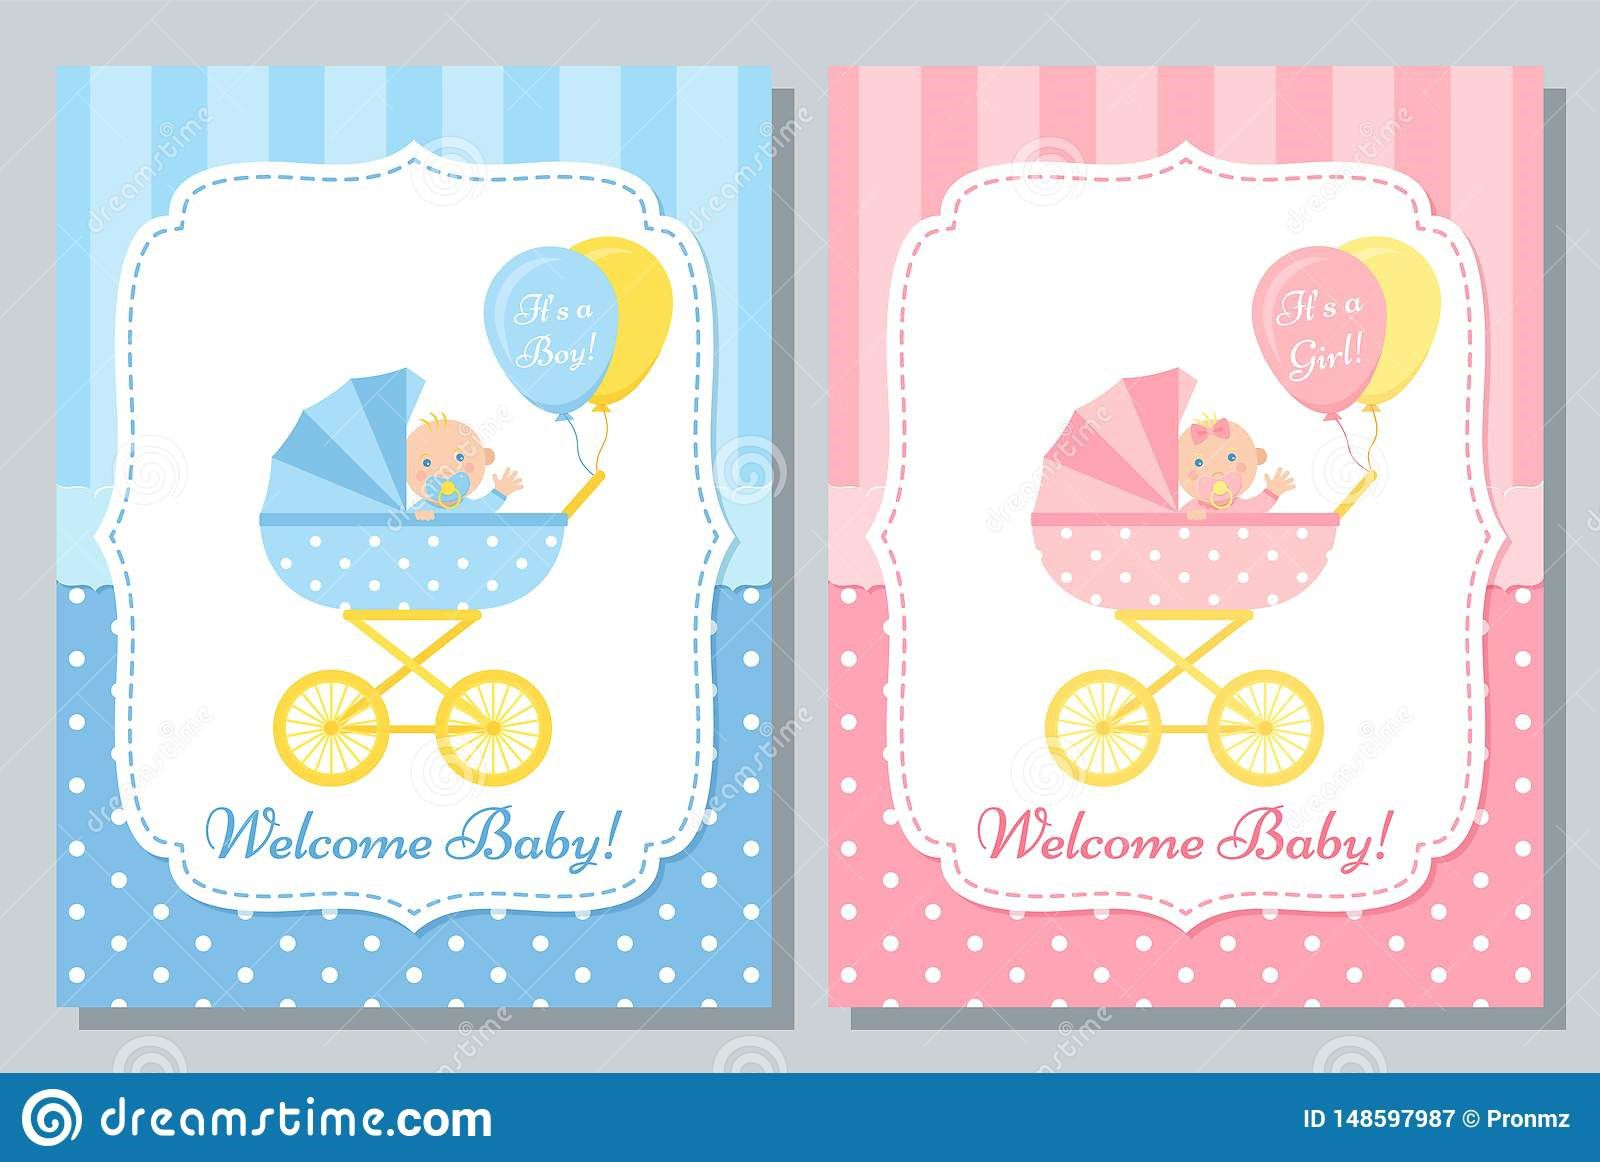 003 Archaicawful Baby Shower Card Design Free Inspiration  Template Microsoft Word Boy DownloadFull